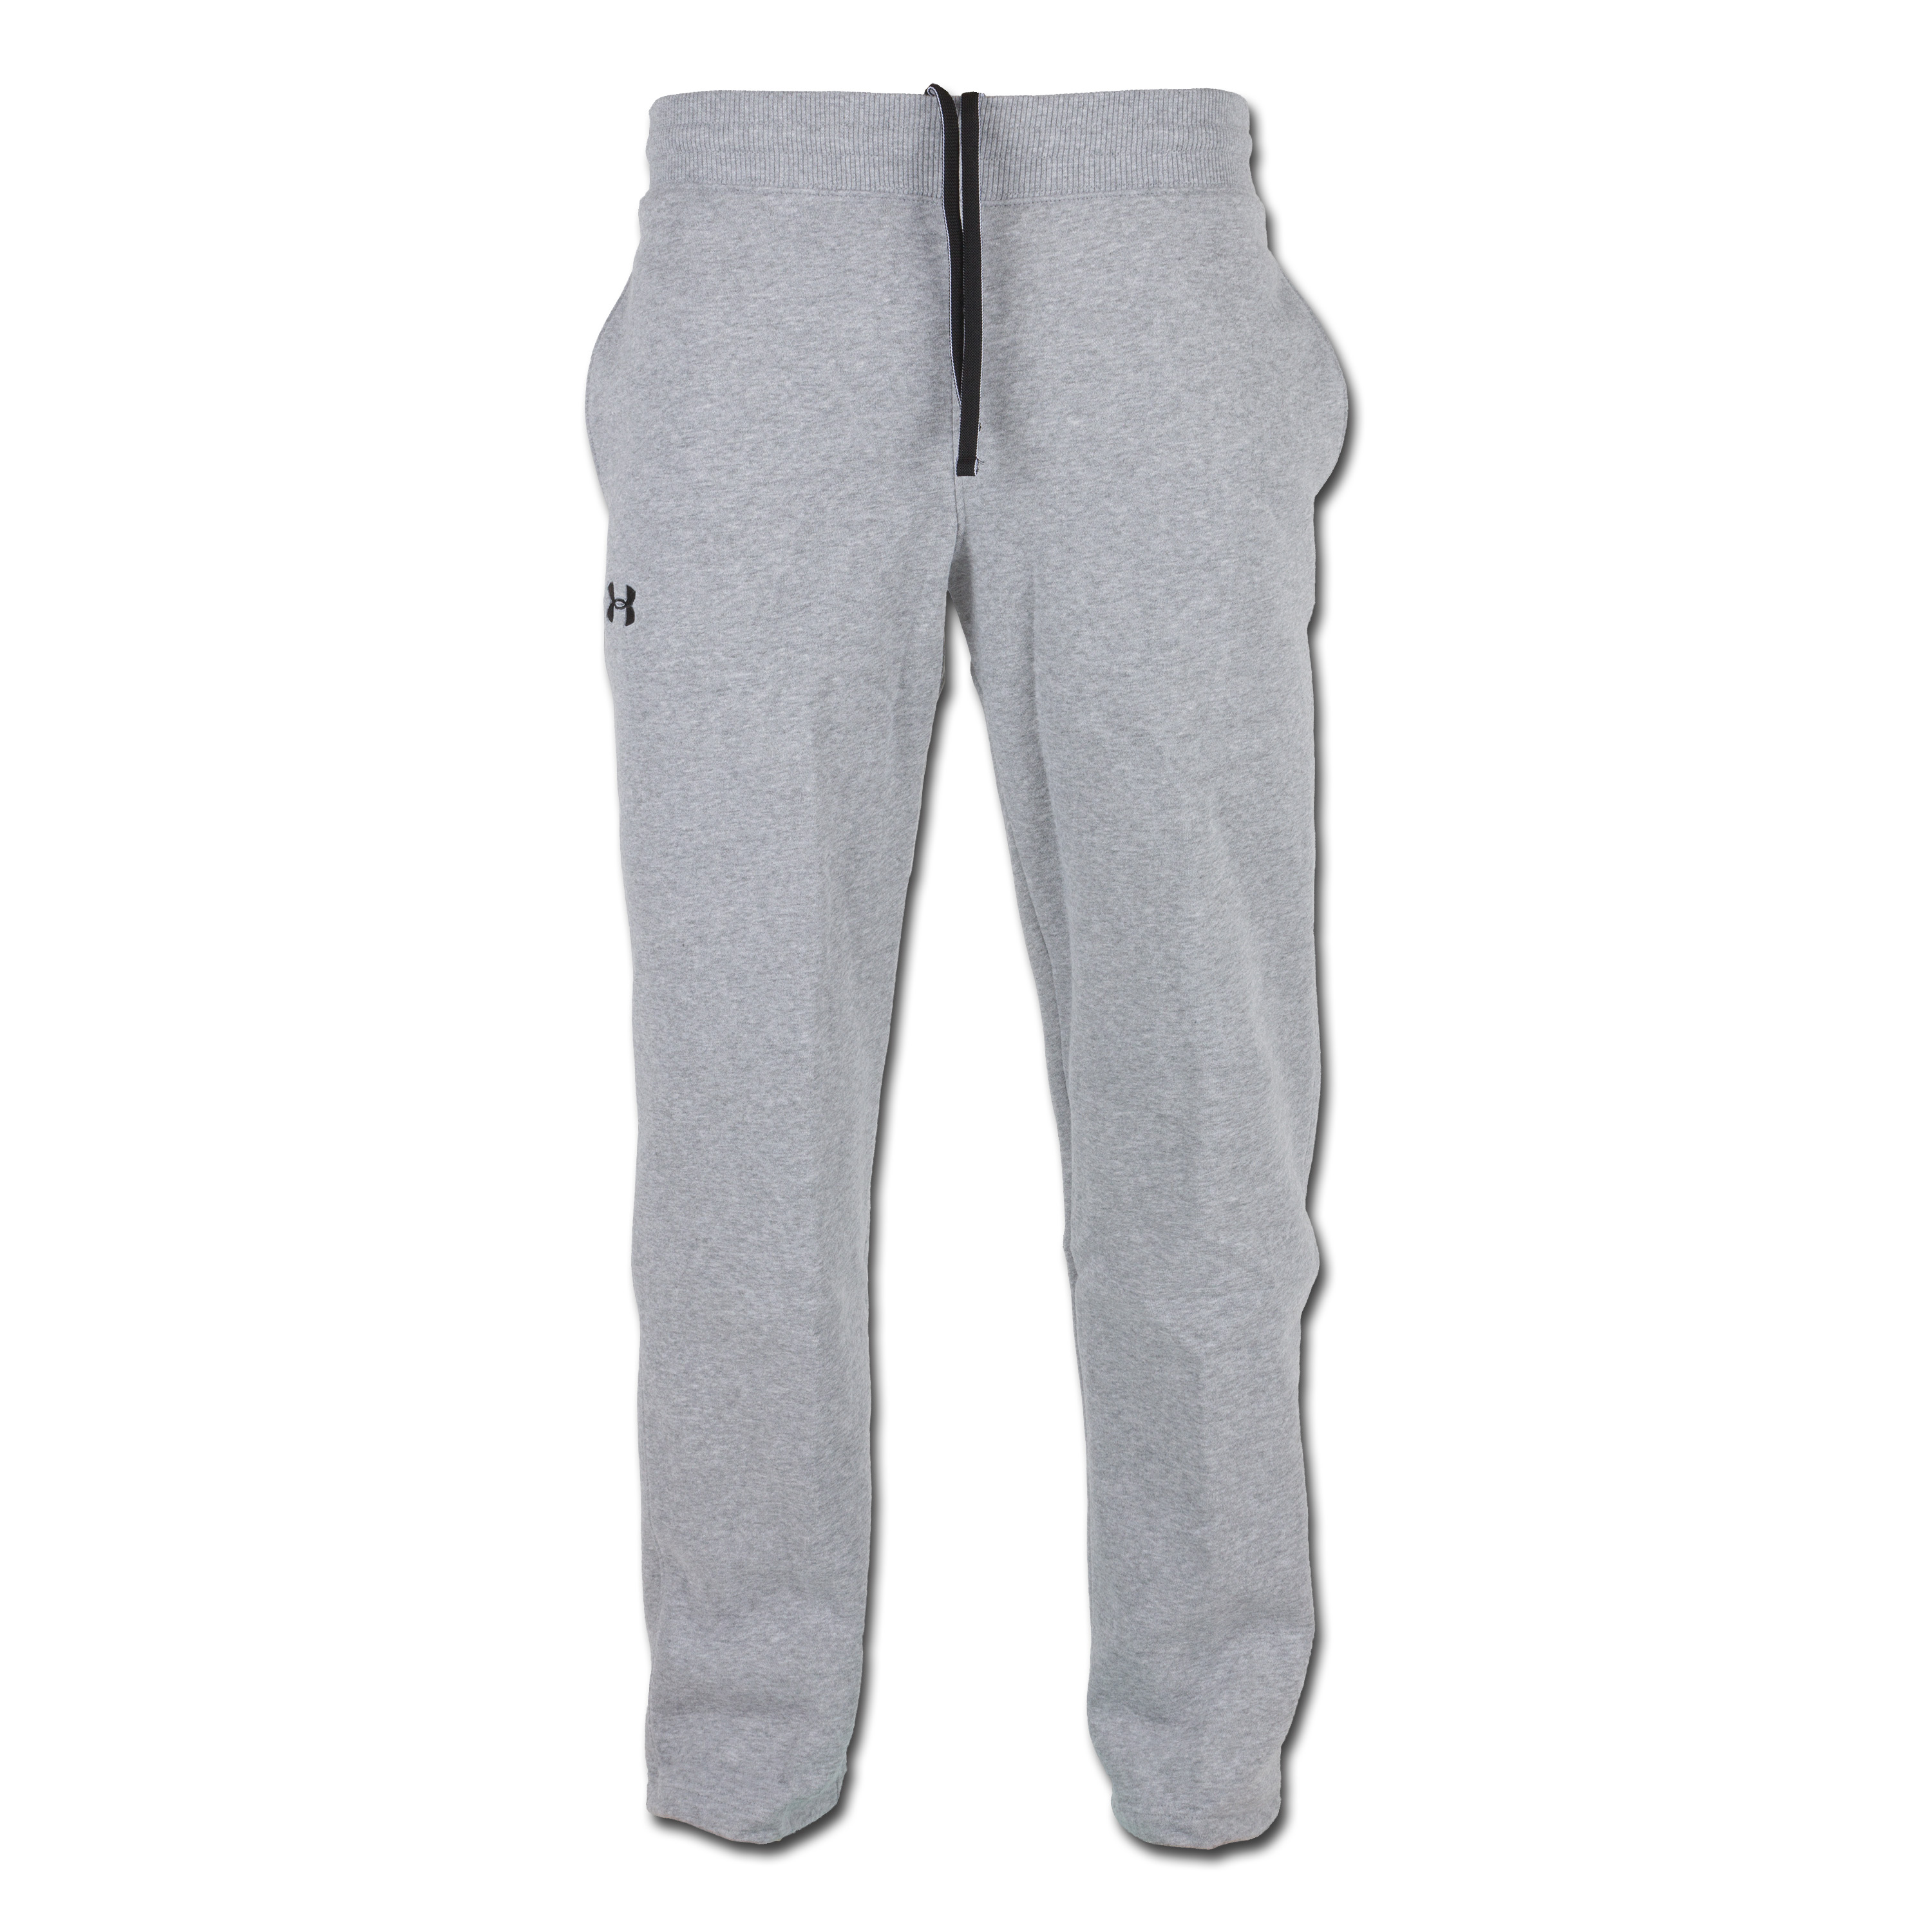 Under Armour Storm Charged Cotton Rival Pant grau